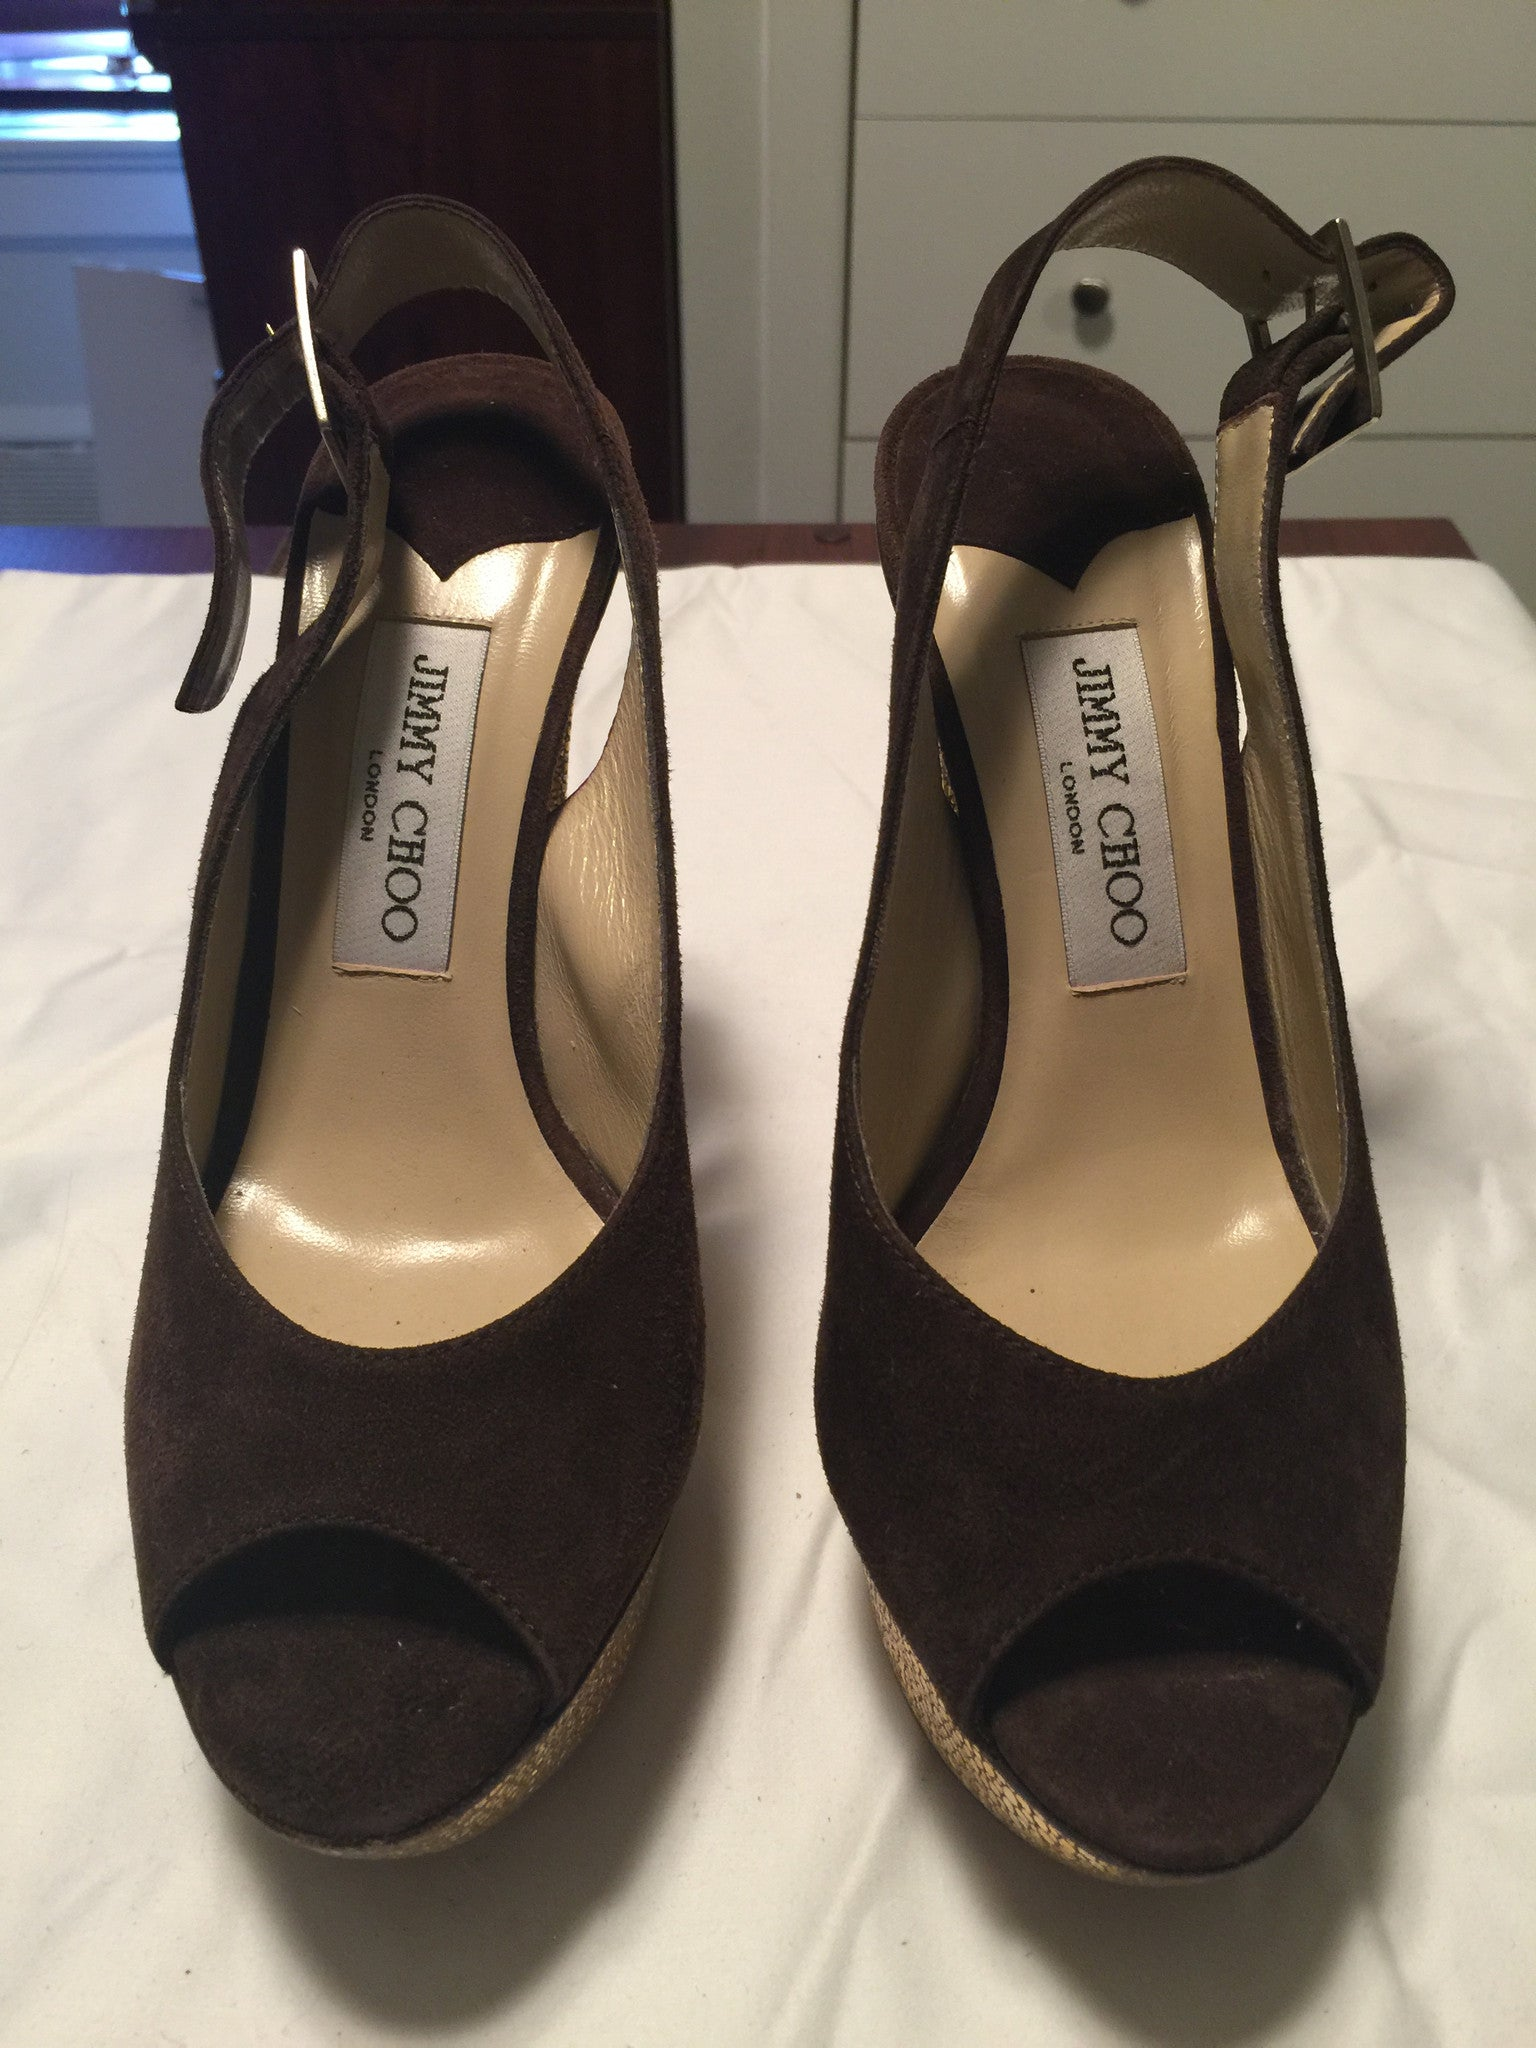 c8981cc78af879 Jimmy Choo Platform Pumps - New York Authentic Designer - Jimmy Choo